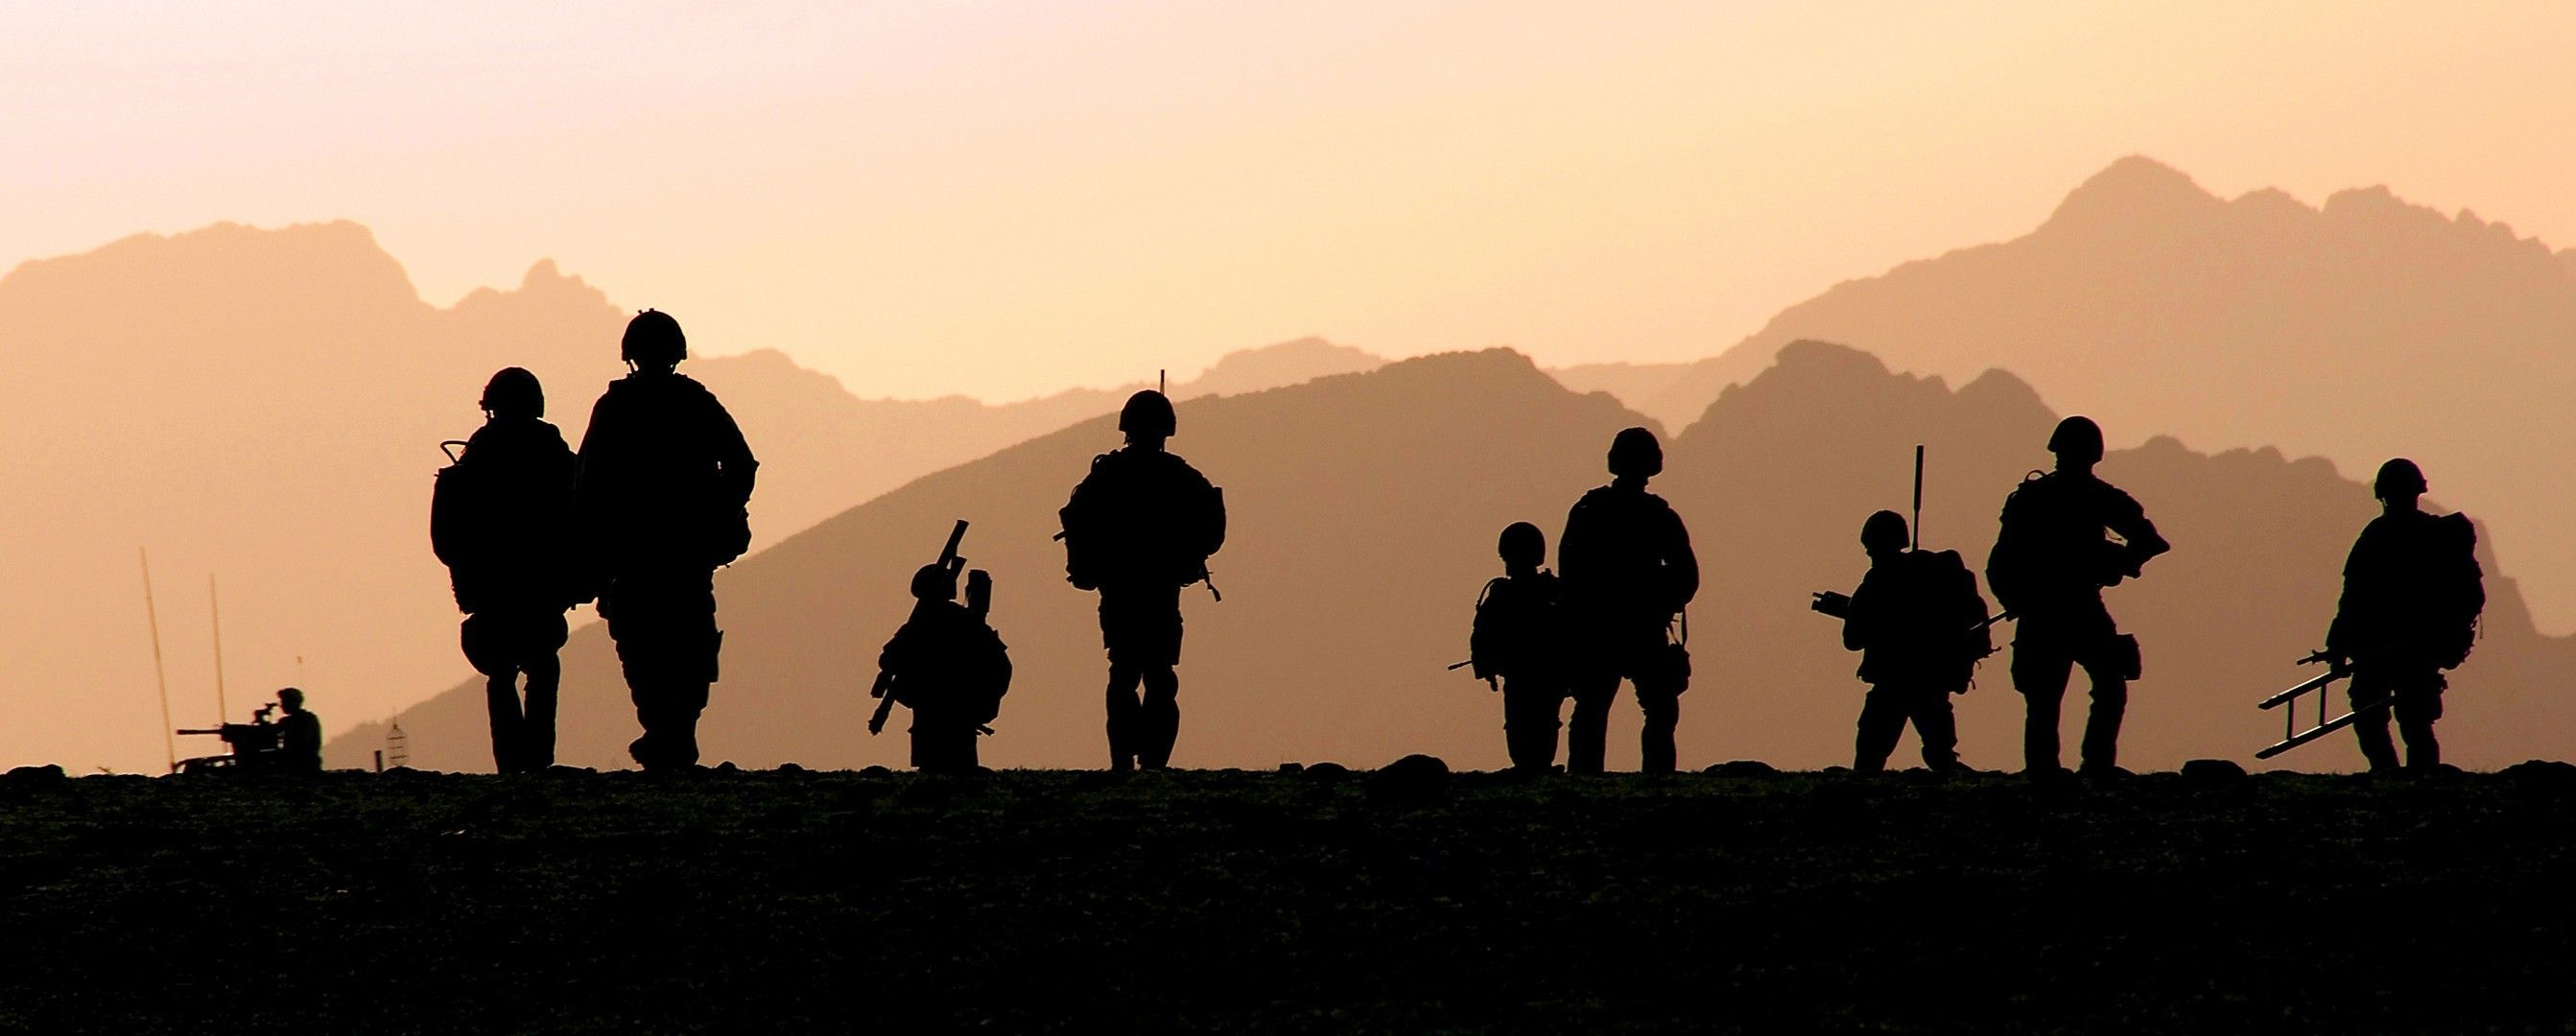 2685x1080 Military Silhouette Royal Marines Wallpapers Hd